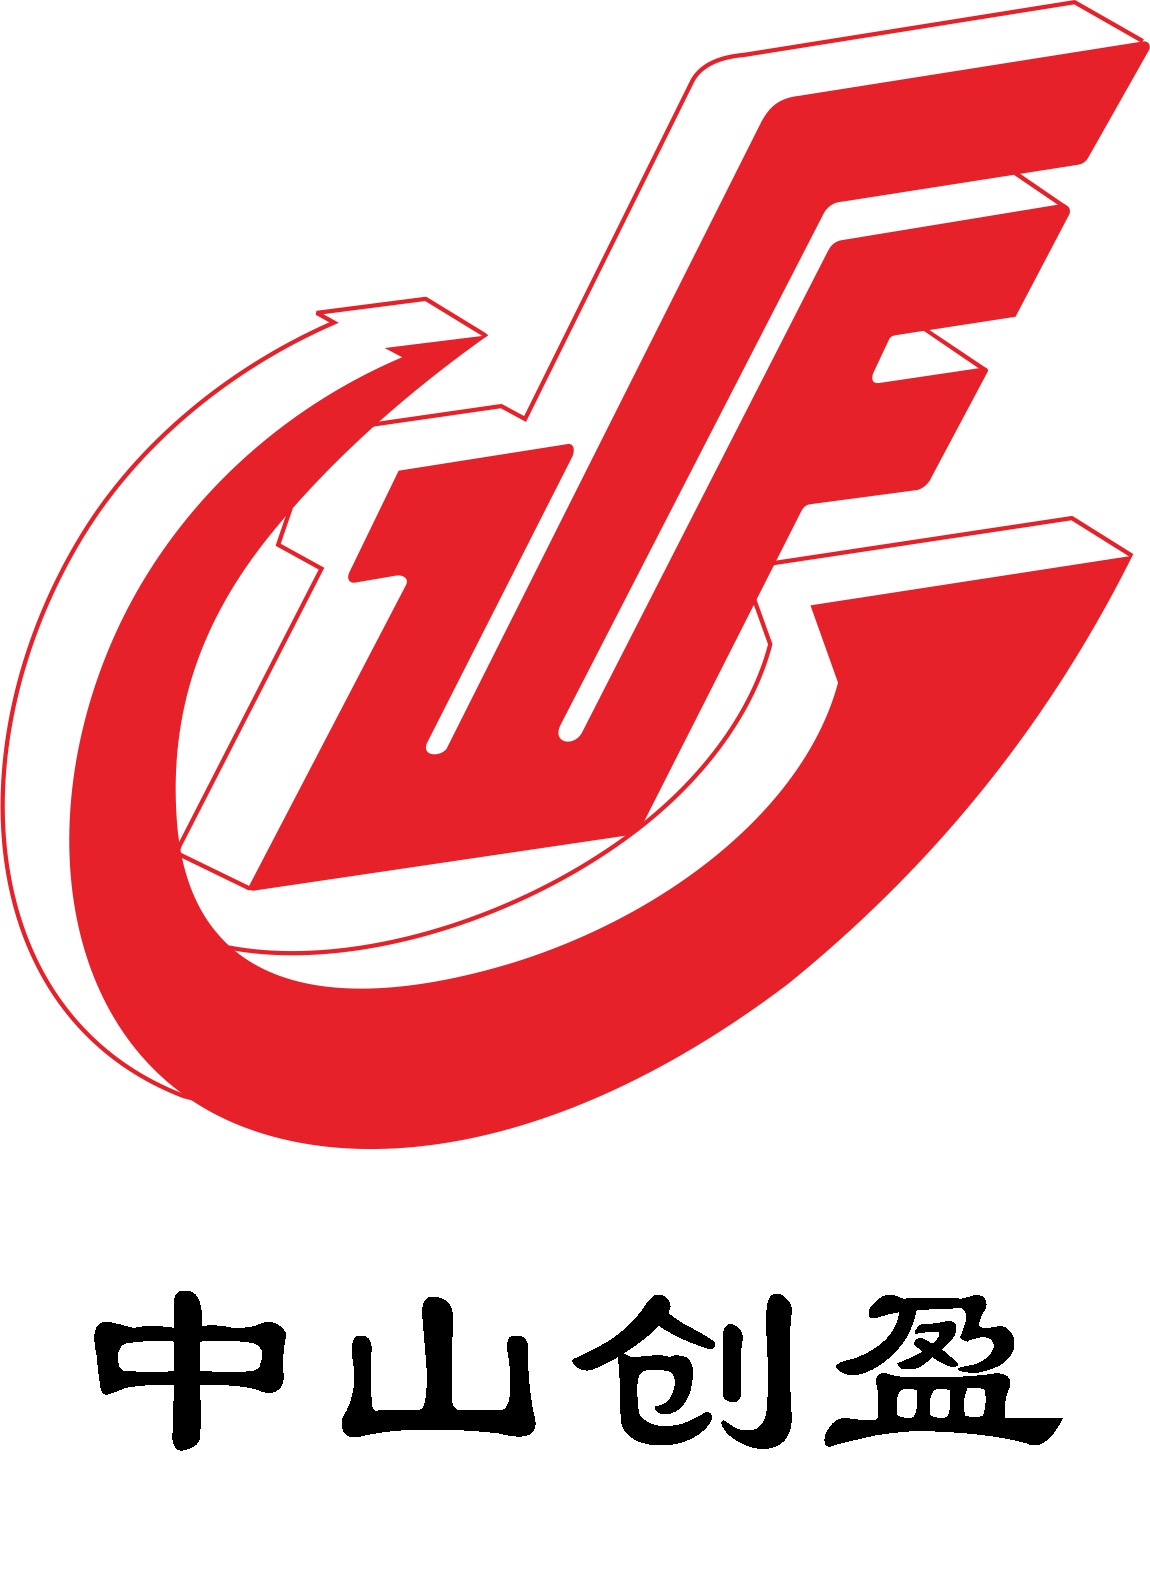 ZHONGSHAN CHUANGYING TRADING COMPANY LIMITED